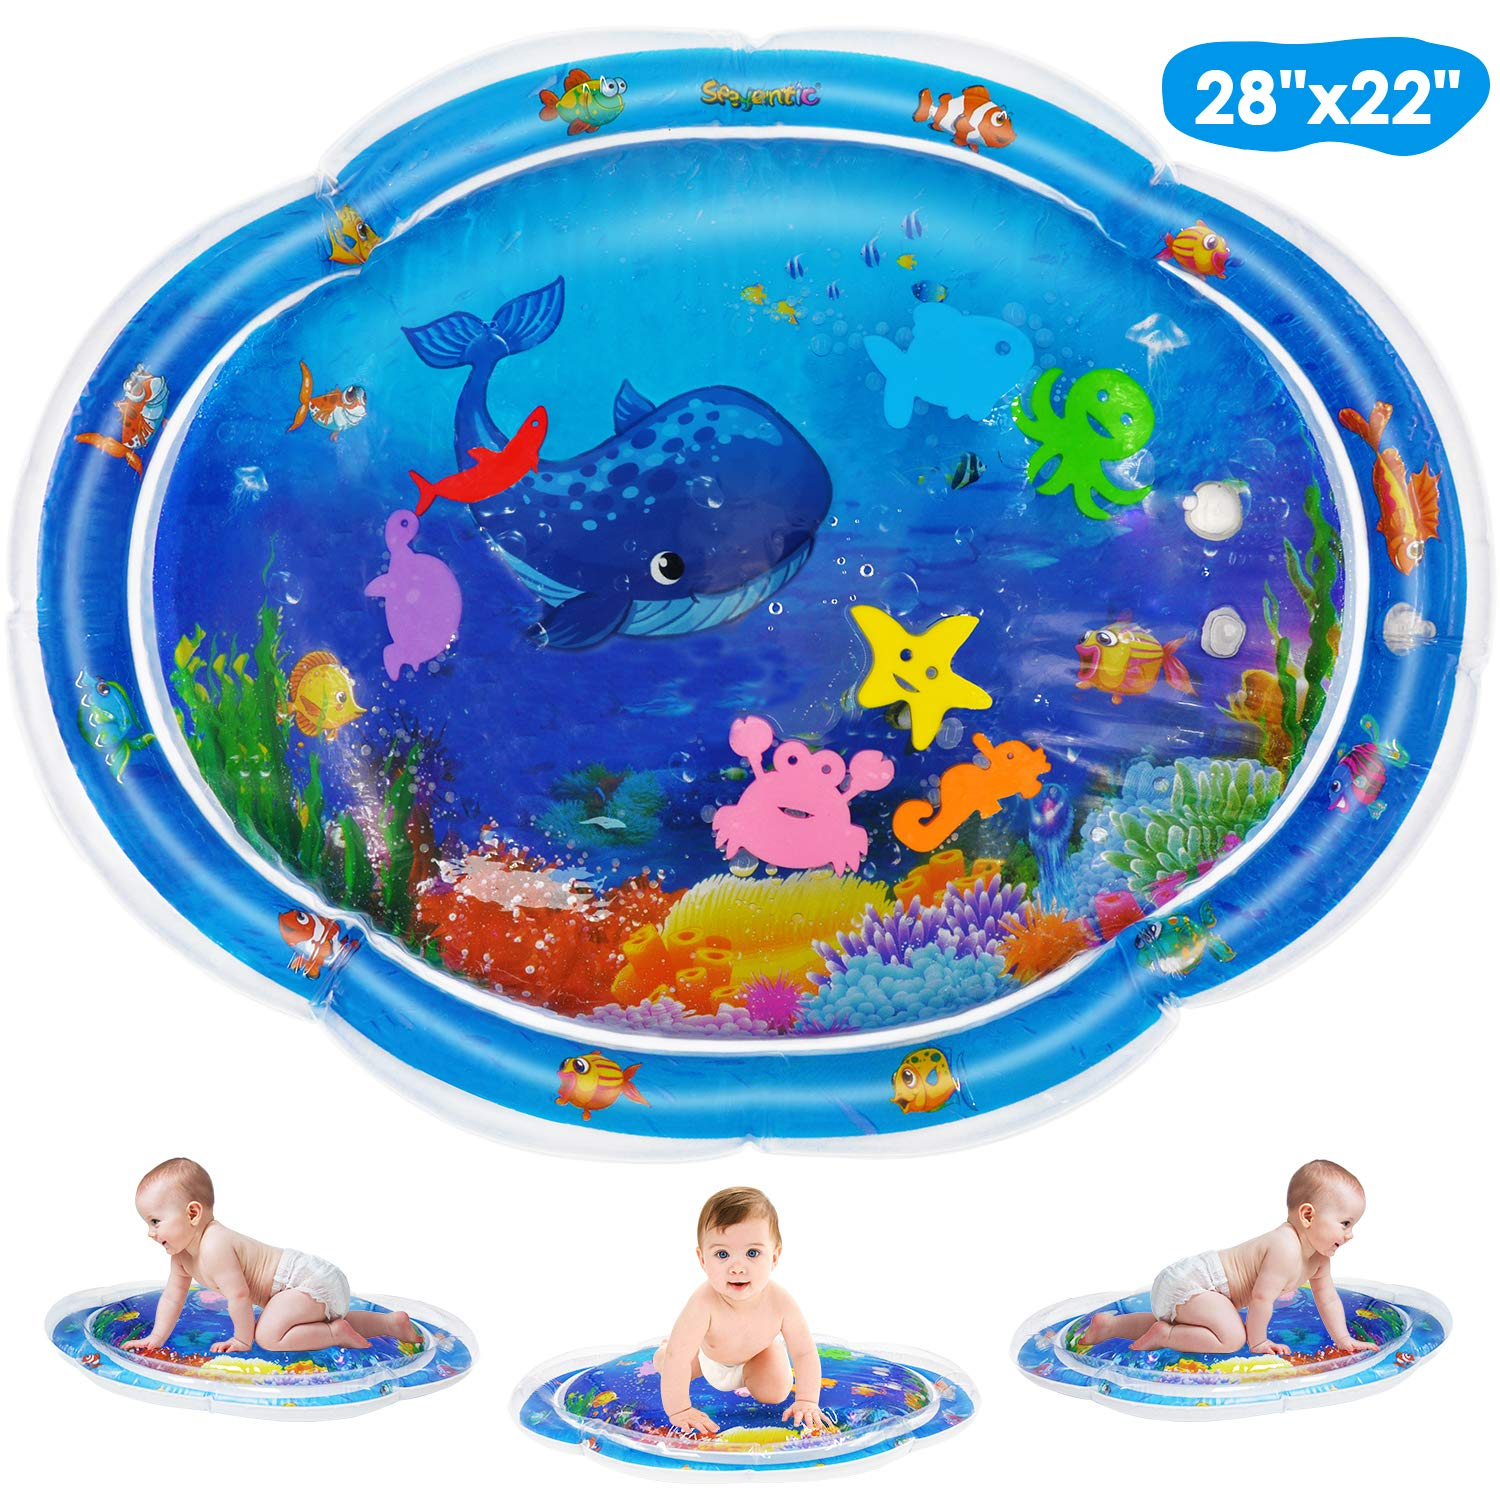 Baby Water Mat Newest Inflatable Baby Activity Play Mat For Newborn Fun Time Sensory Toys For Baby's Stimulation Growth BPA Free